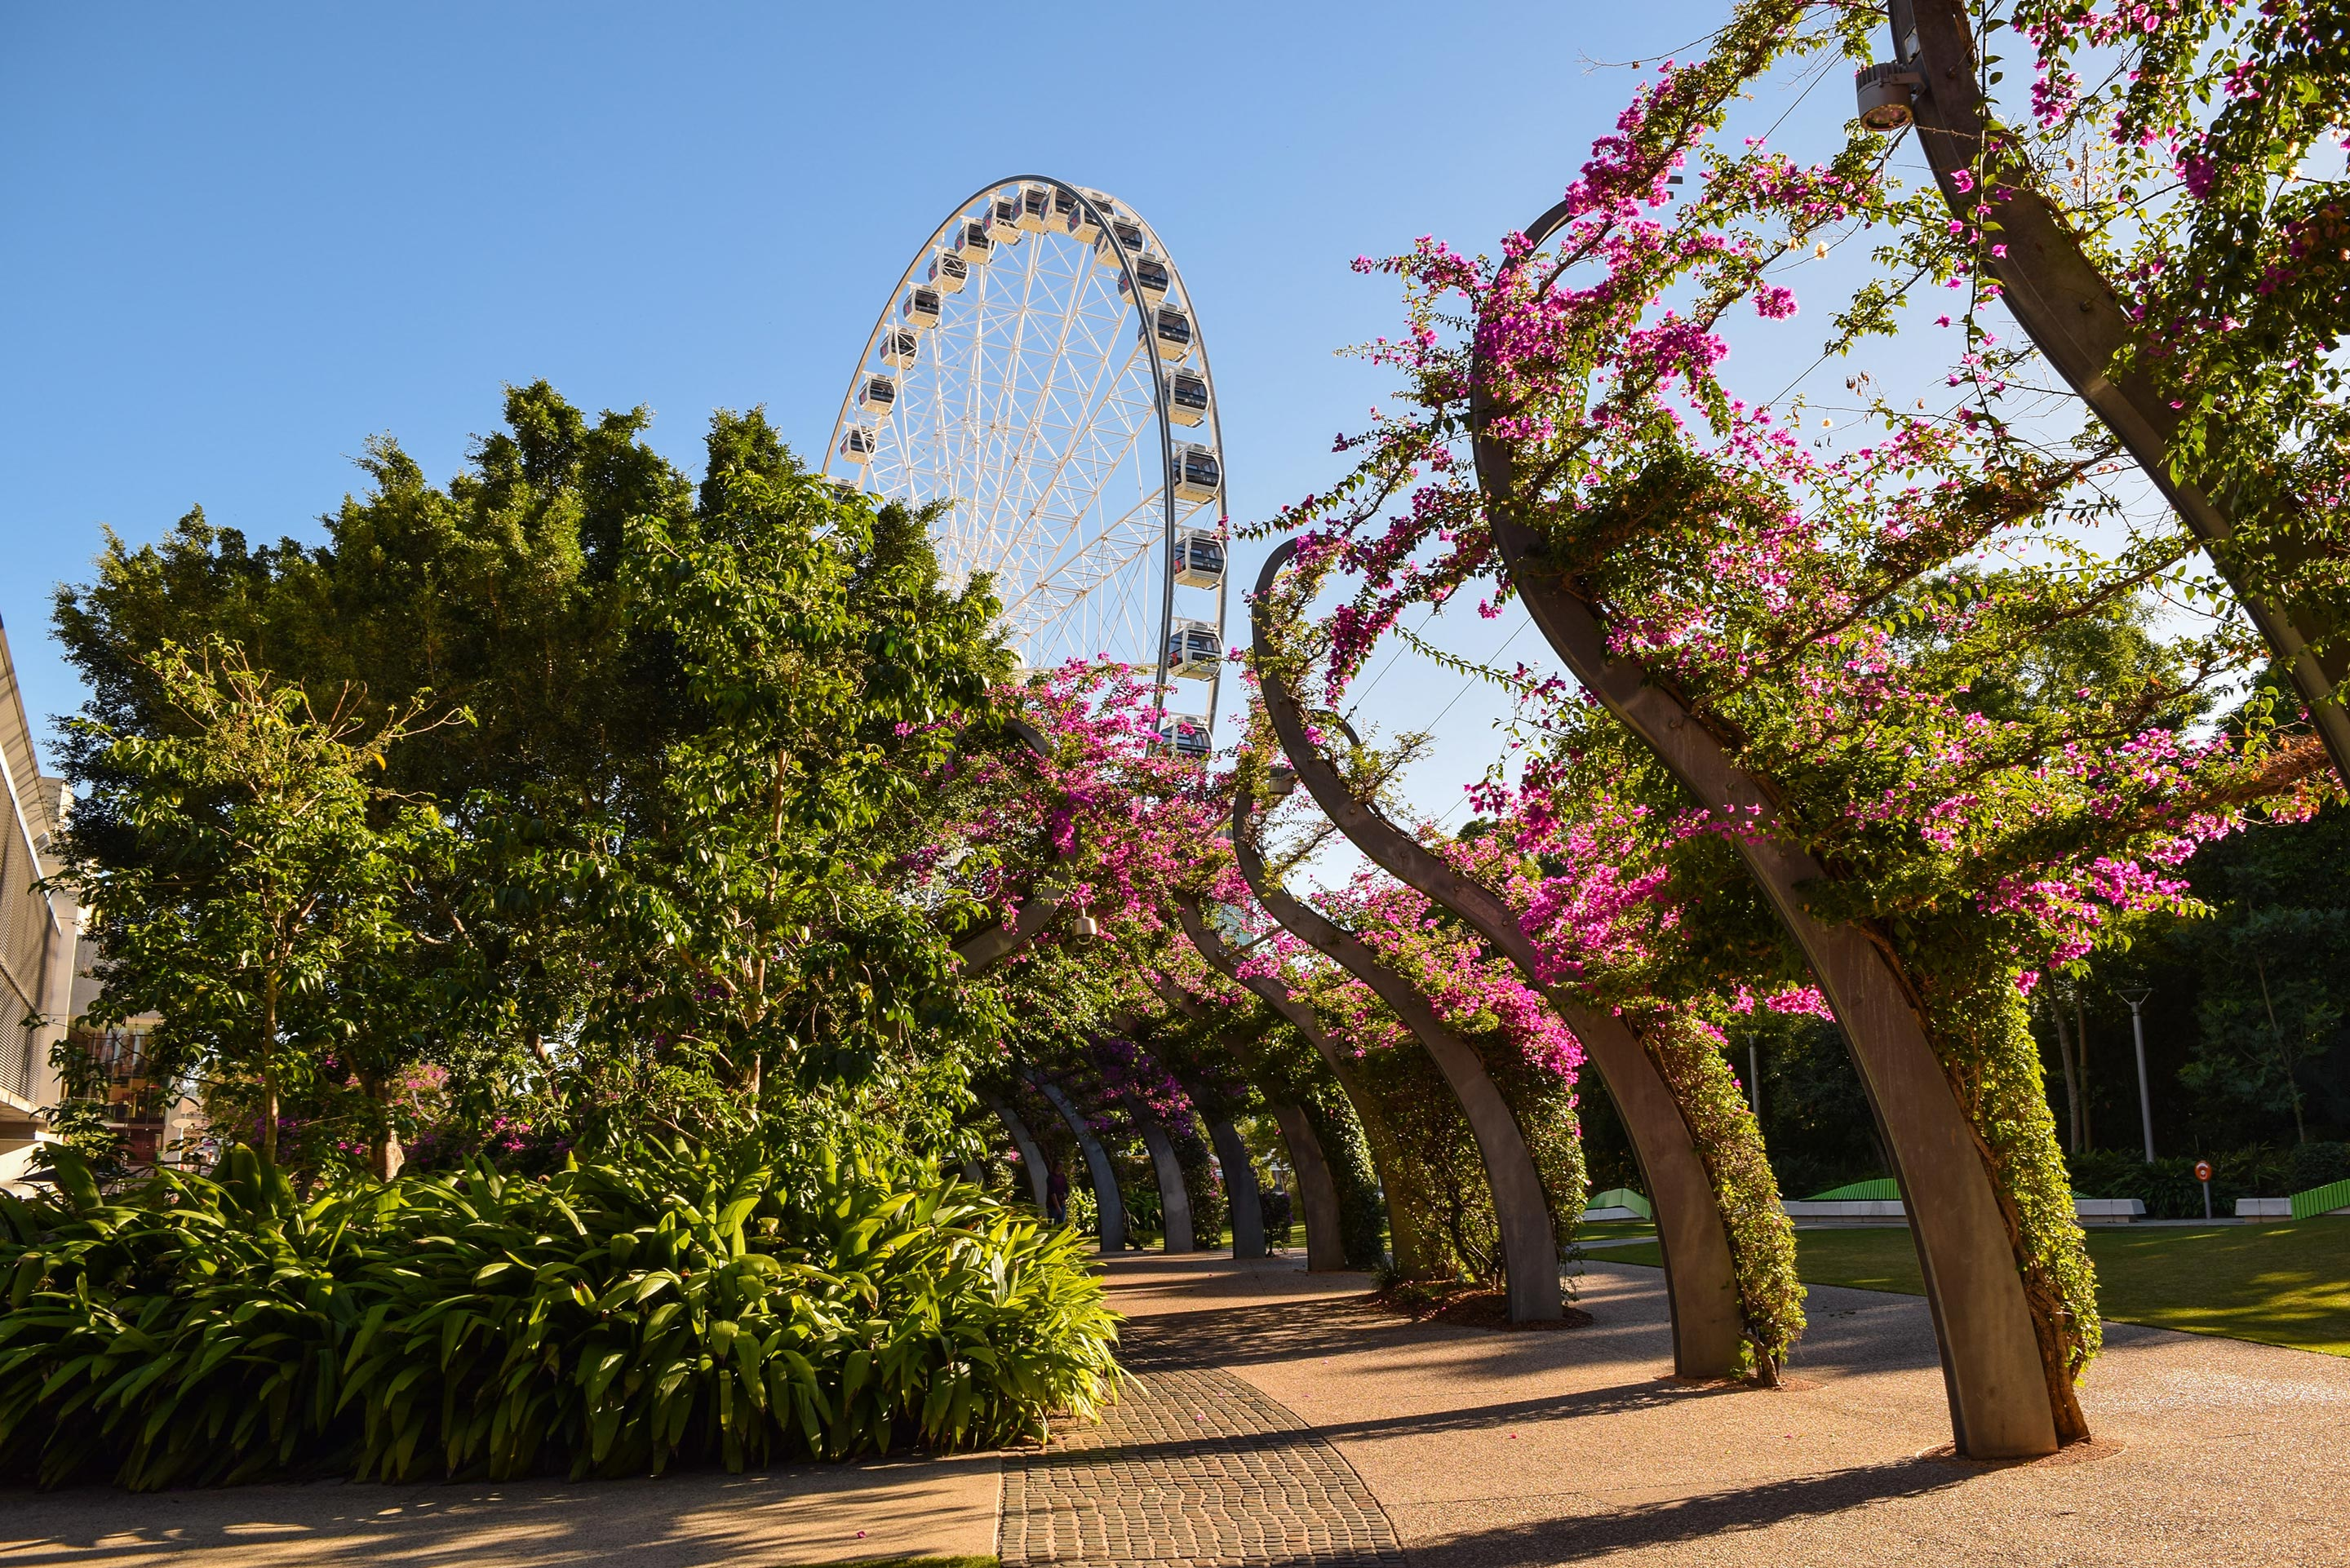 View of the South Bank ferris wheel in Brisbane, Australia